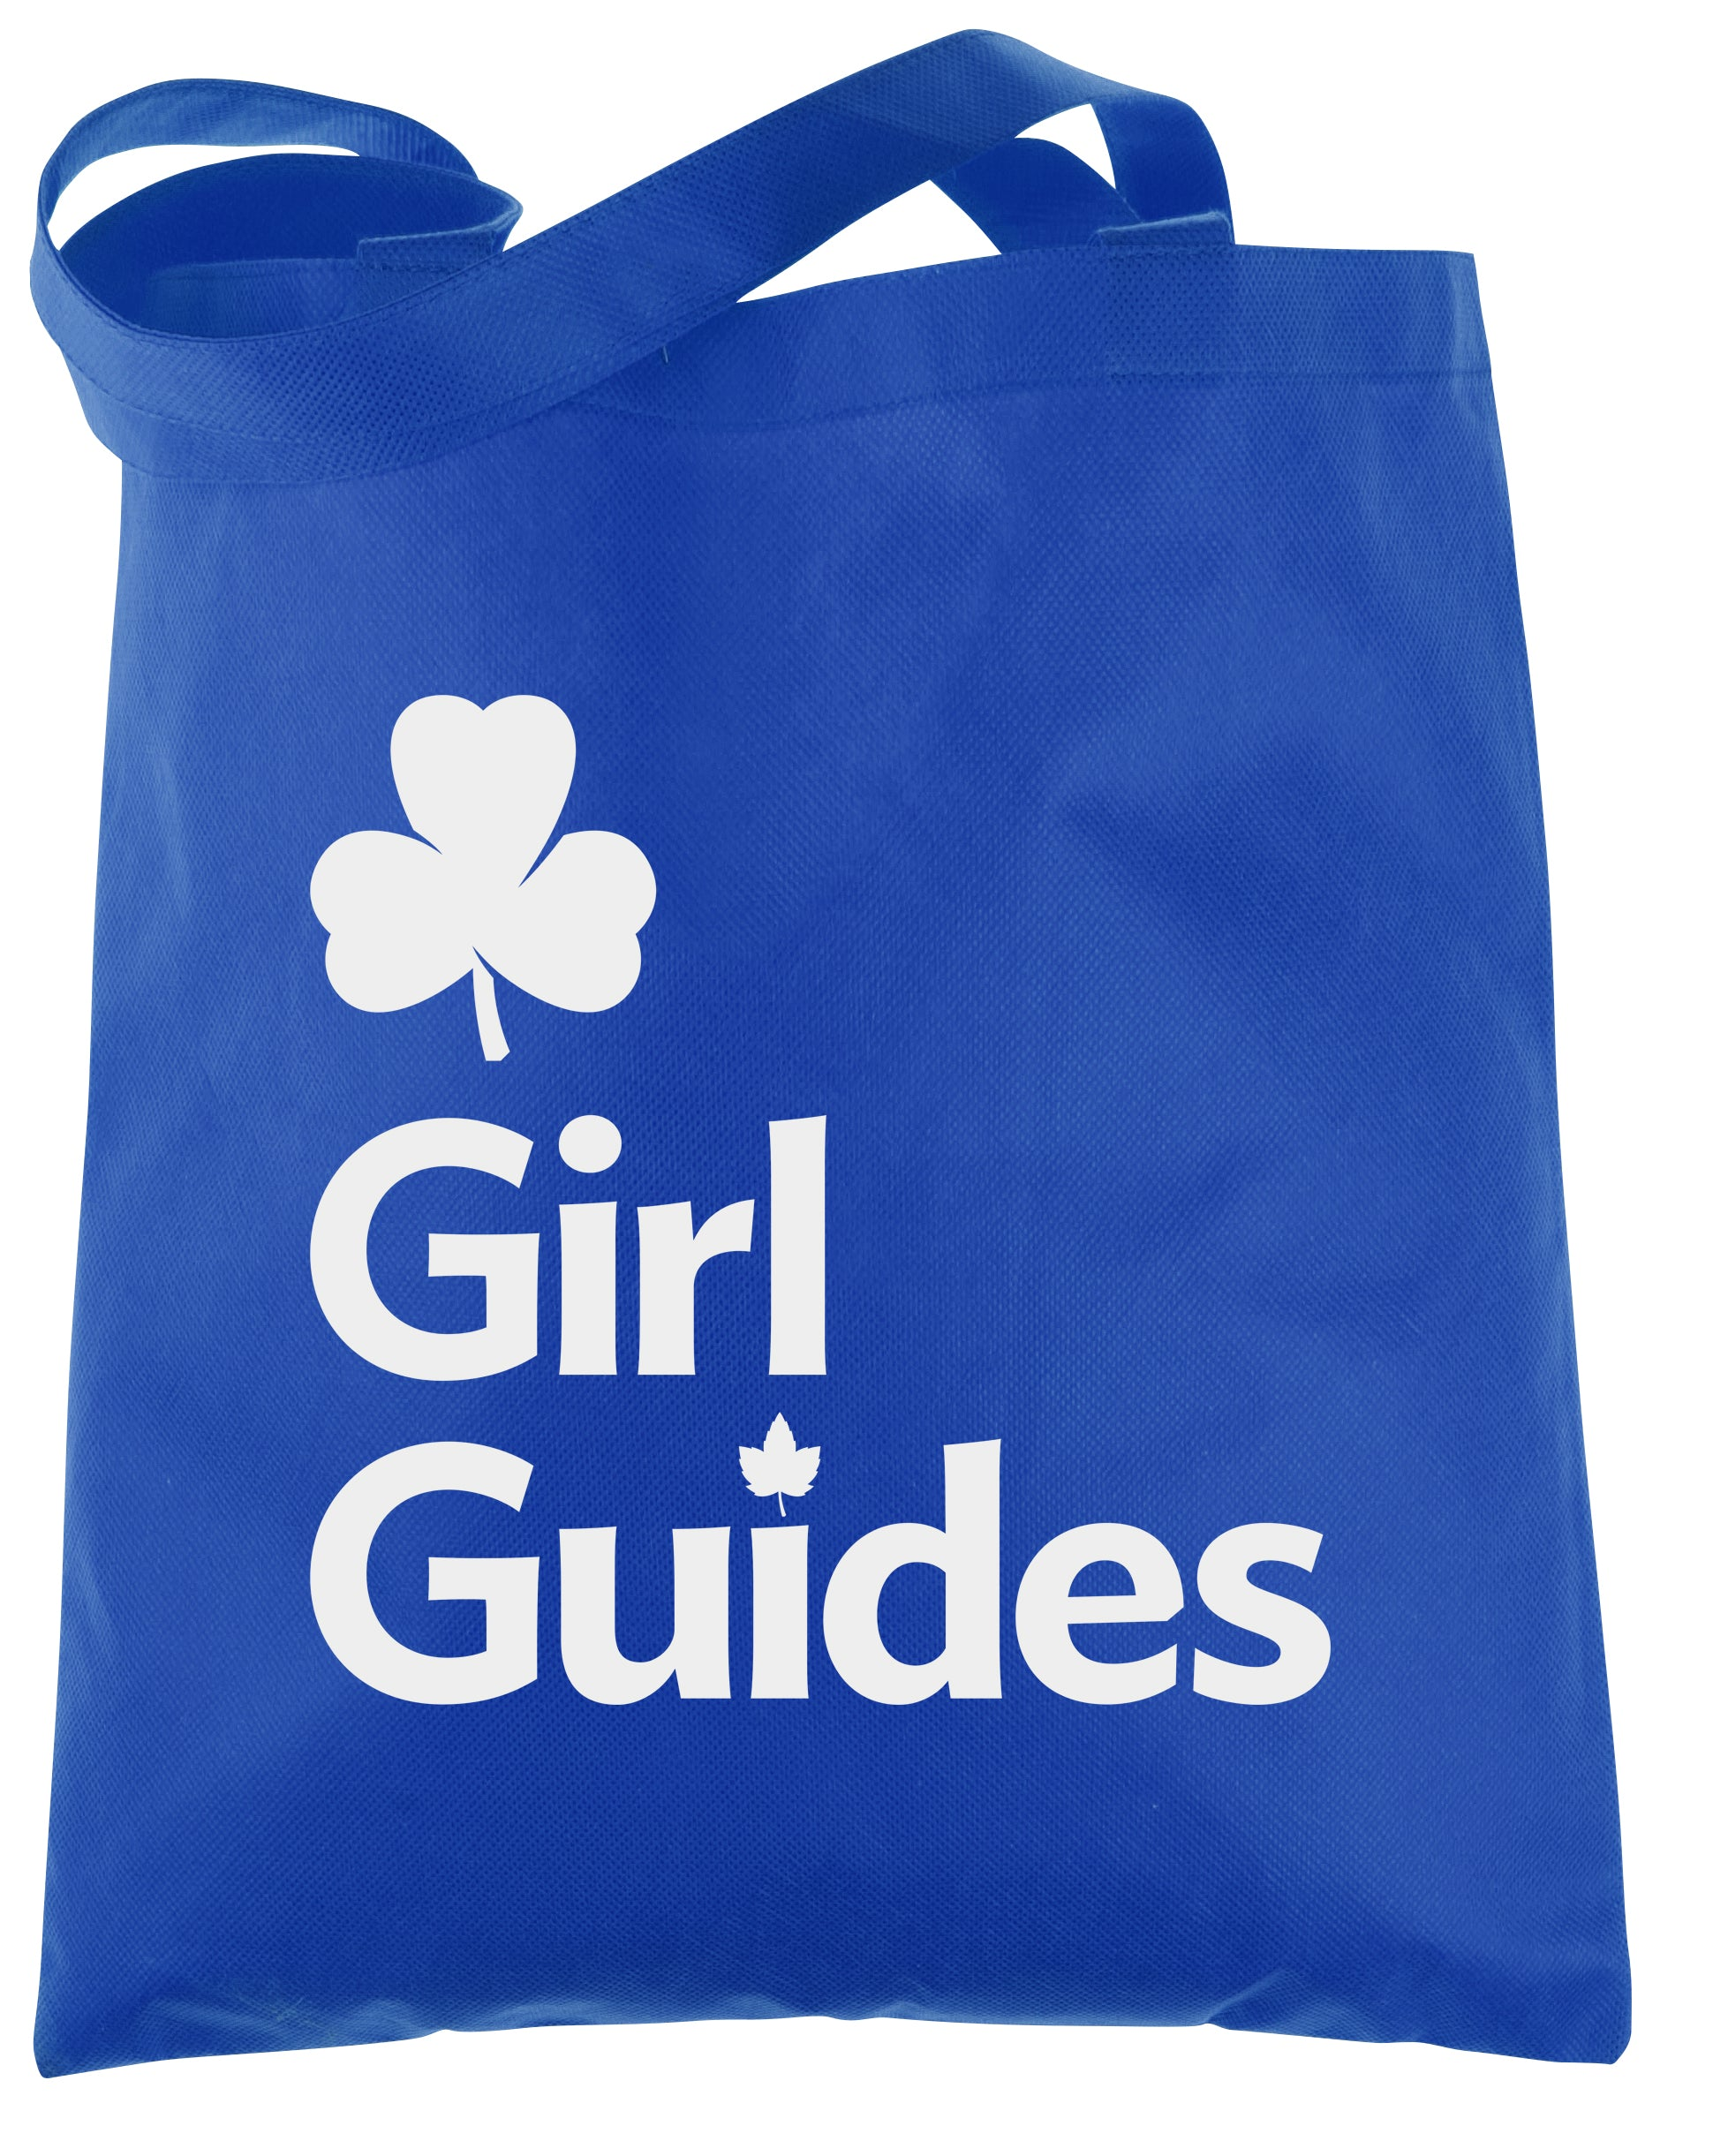 Girl guides of canada pathfinder module categories